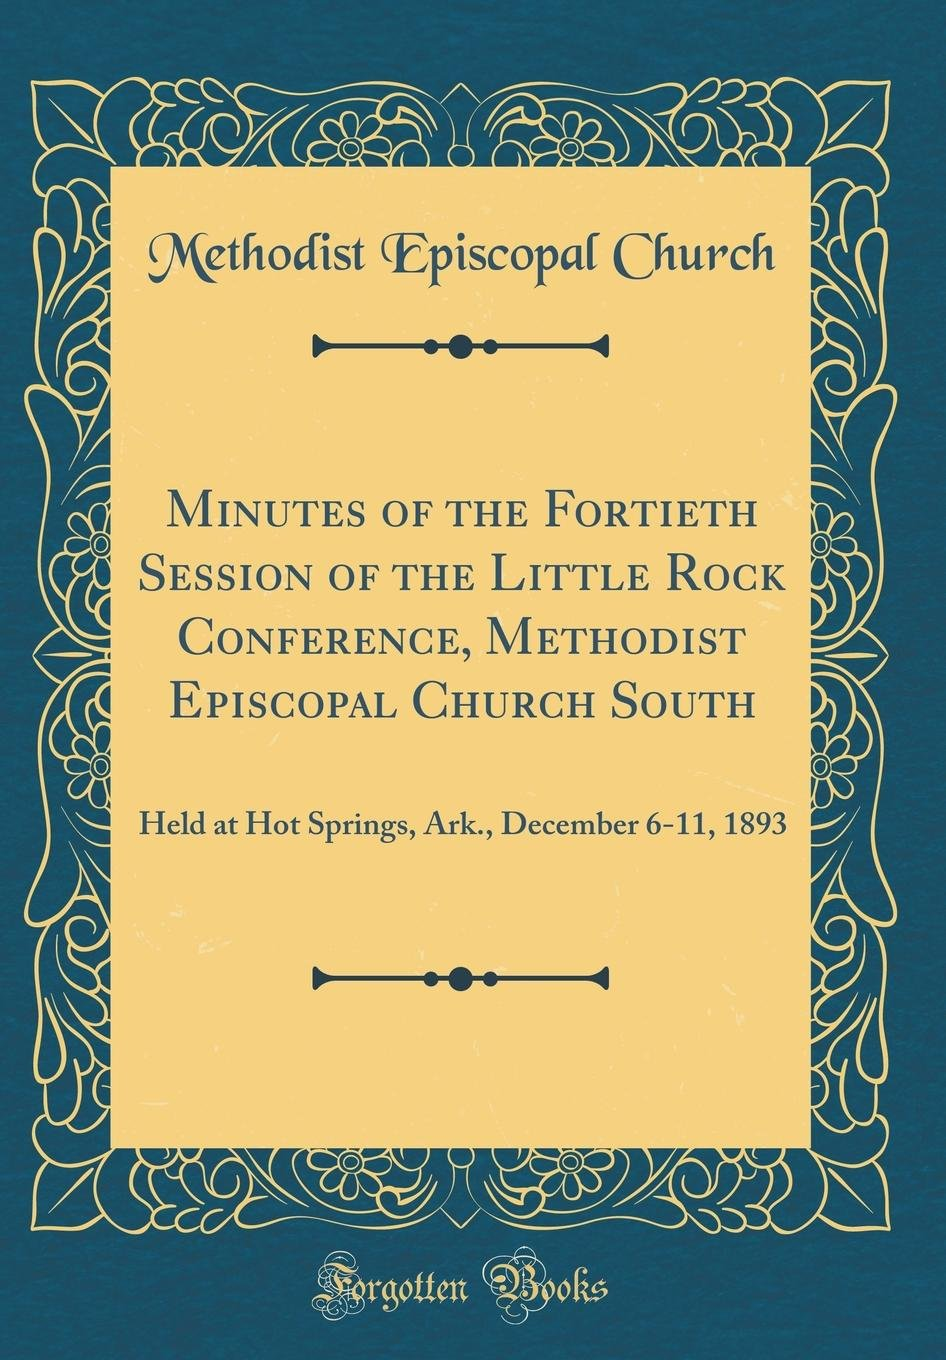 Minutes of the Fortieth Session of the Little Rock Conference, Methodist Episcopal Church South: Held at Hot Springs, Ark., December 6-11, 1893 (Classic Reprint) pdf epub